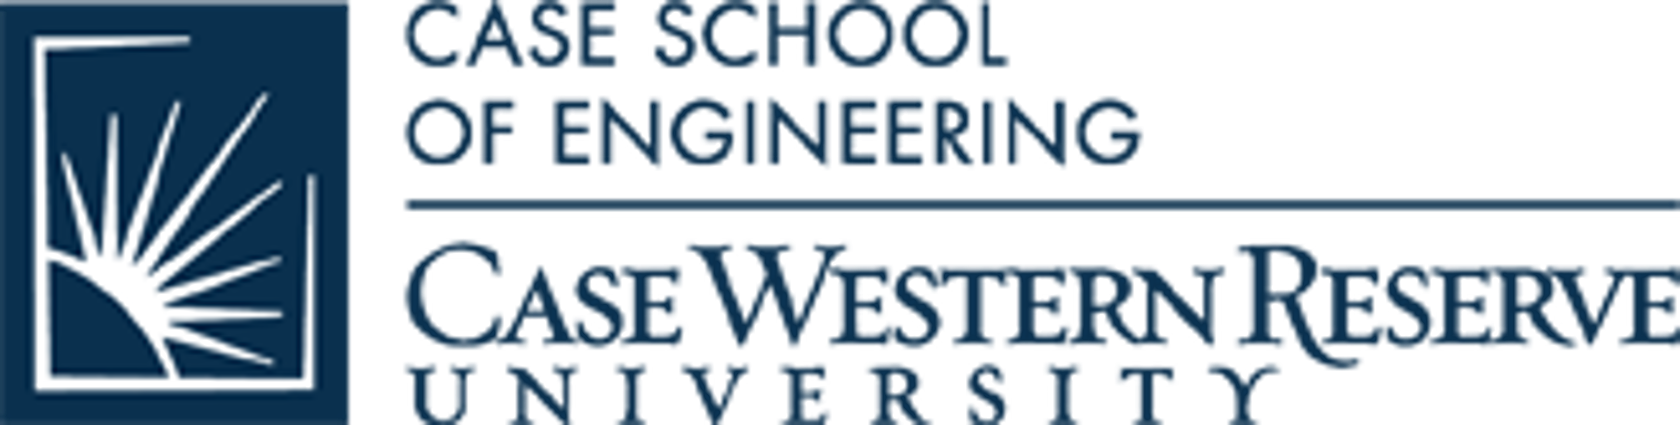 Case Western Reserve University Engineering